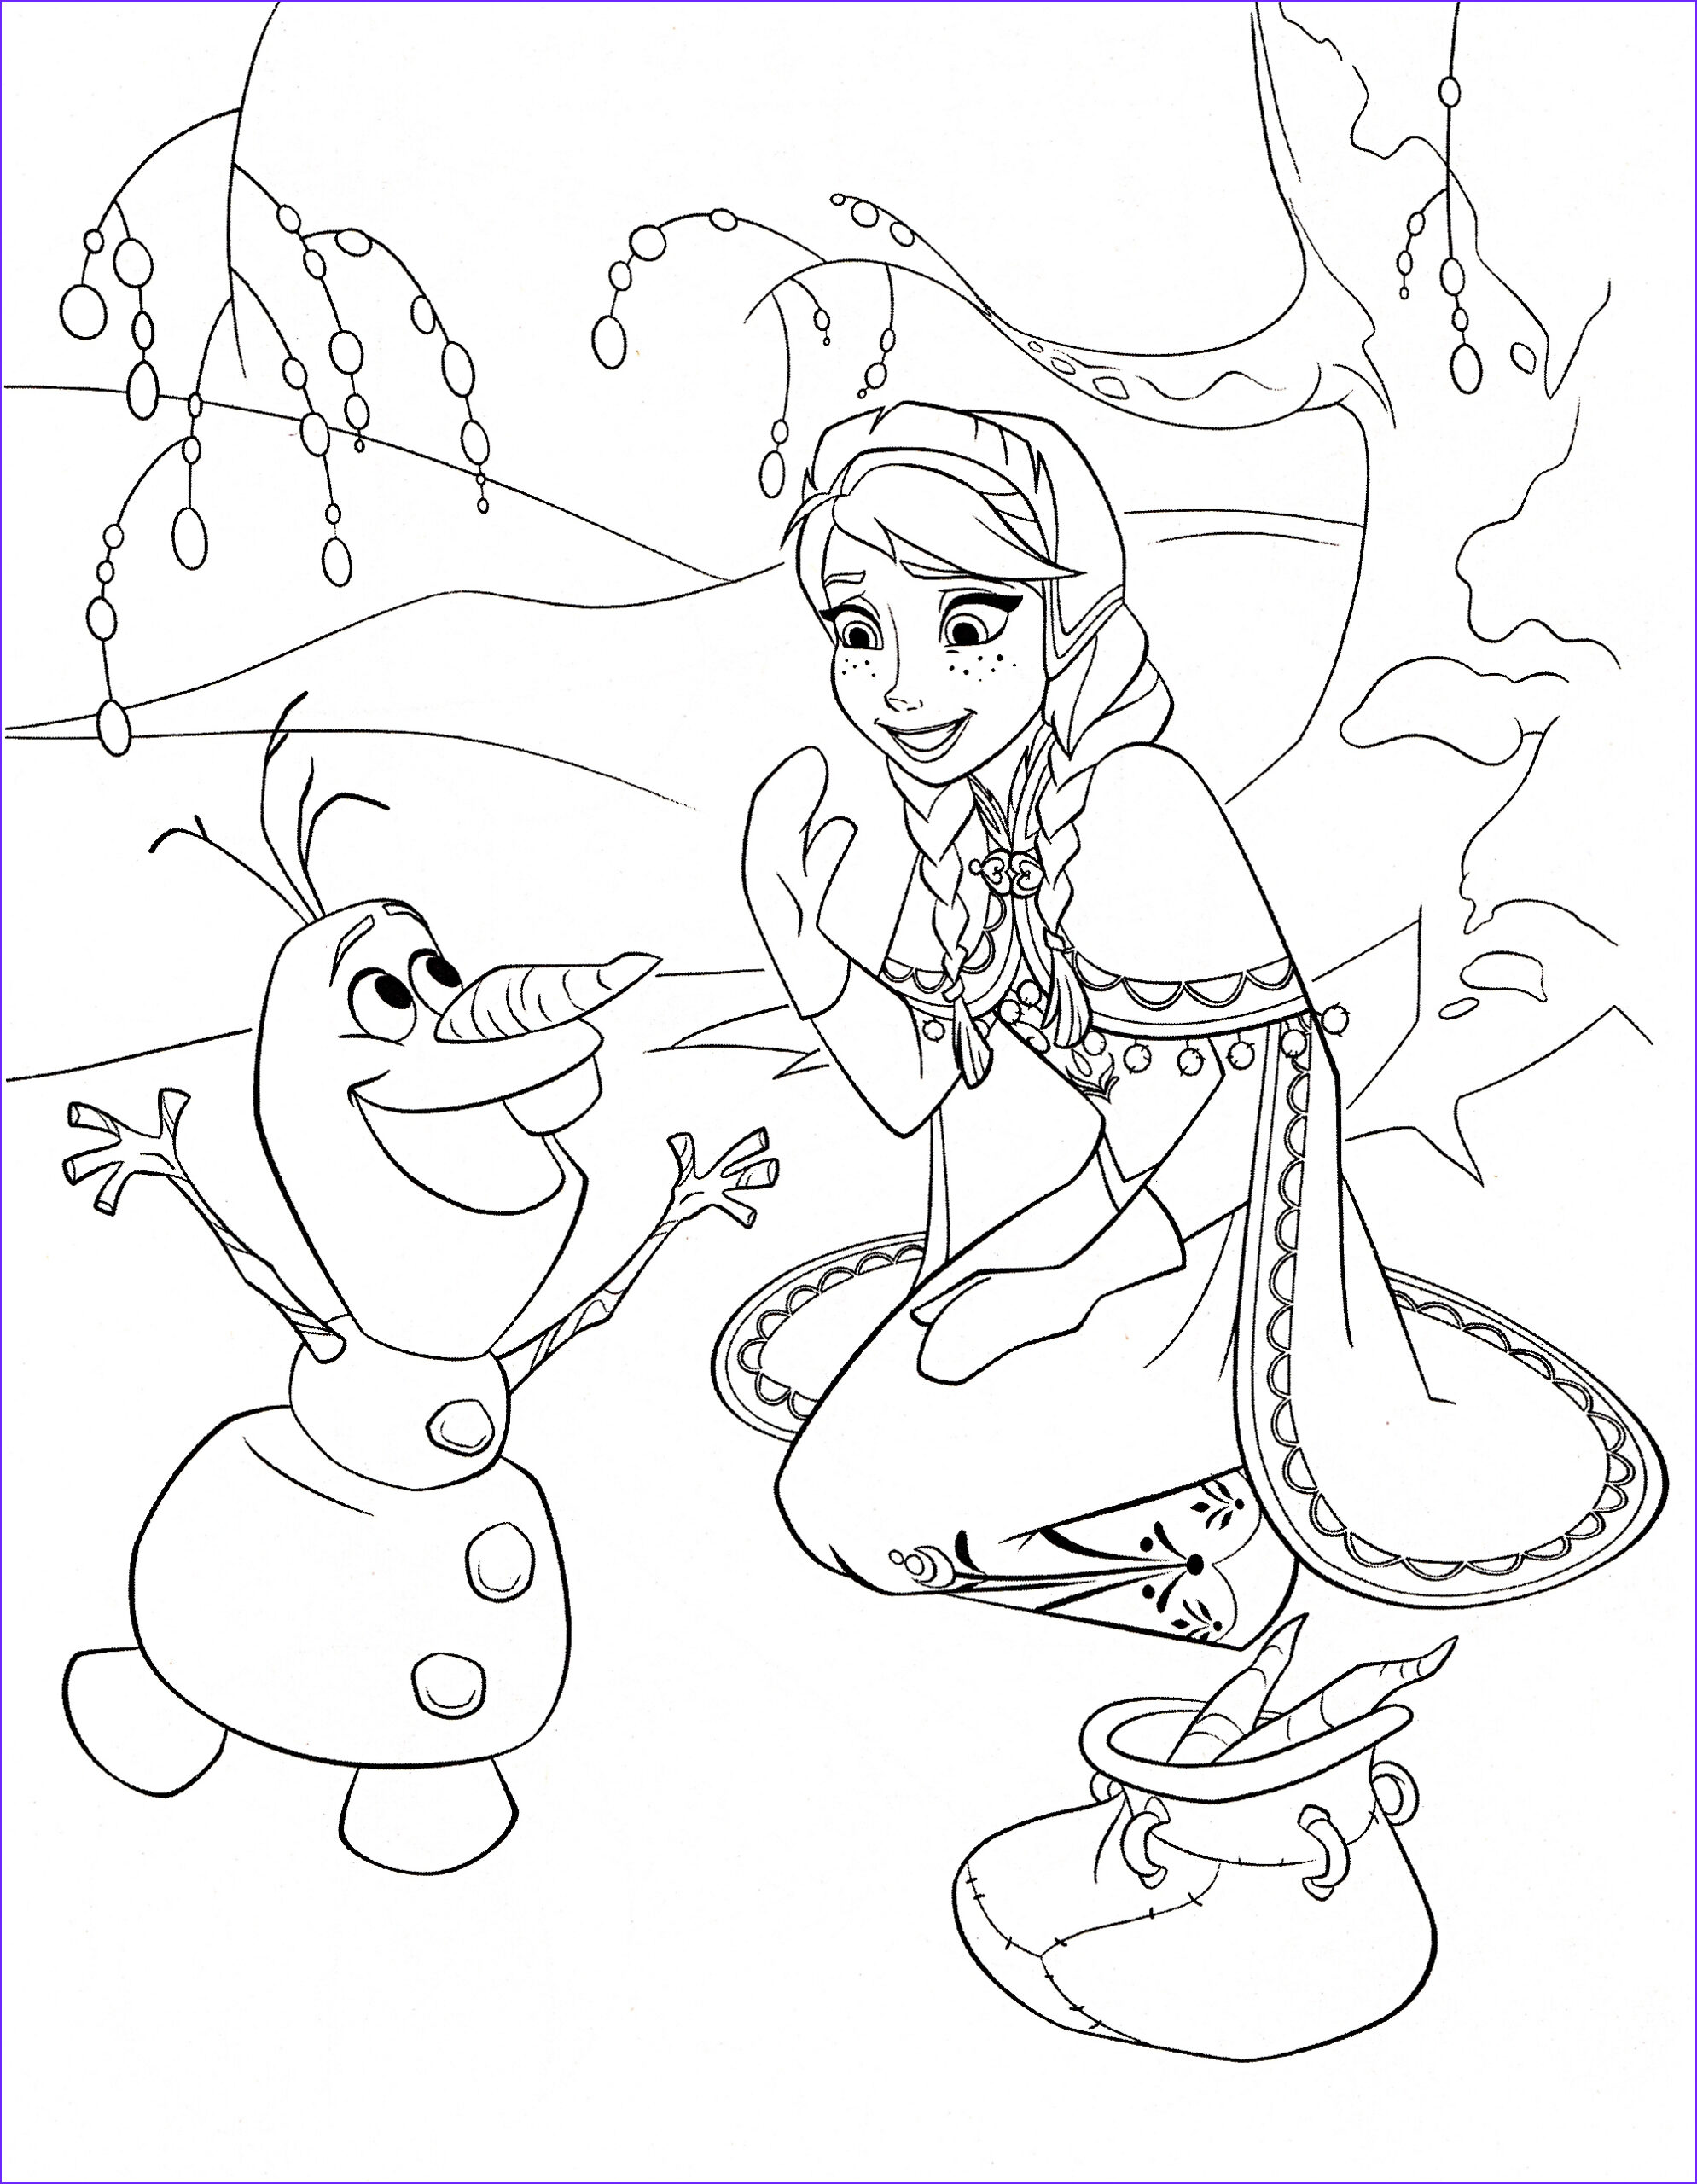 Coloring Activity Awesome Photos Free Frozen Printable Coloring & Activity Pages Plus Free